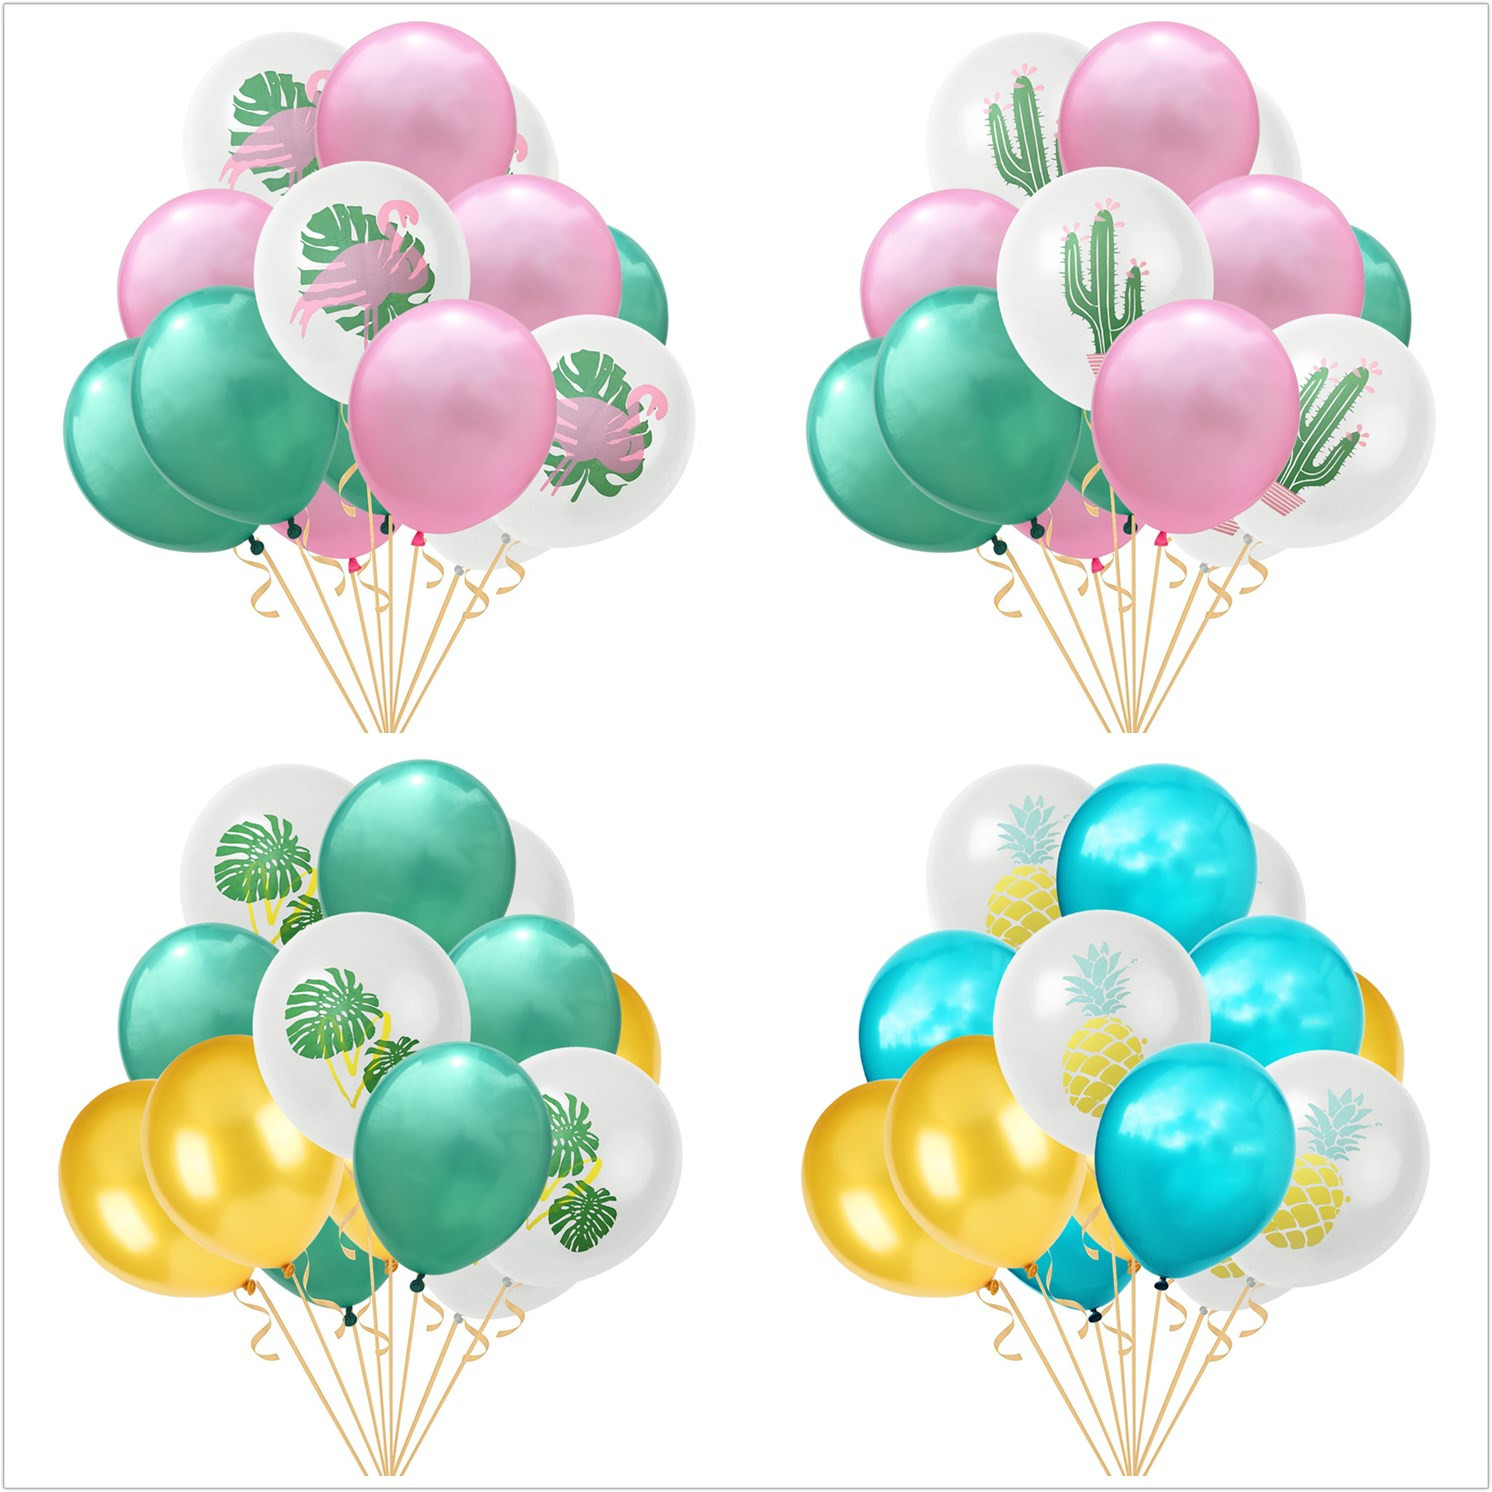 Considerate 15pcs/lot Hawaii Flamingos Pineapple Cactus Leaf Mix Color Balloons Wedding Decorations Summer Pool Tropical Party Supplies Home & Garden Event & Party